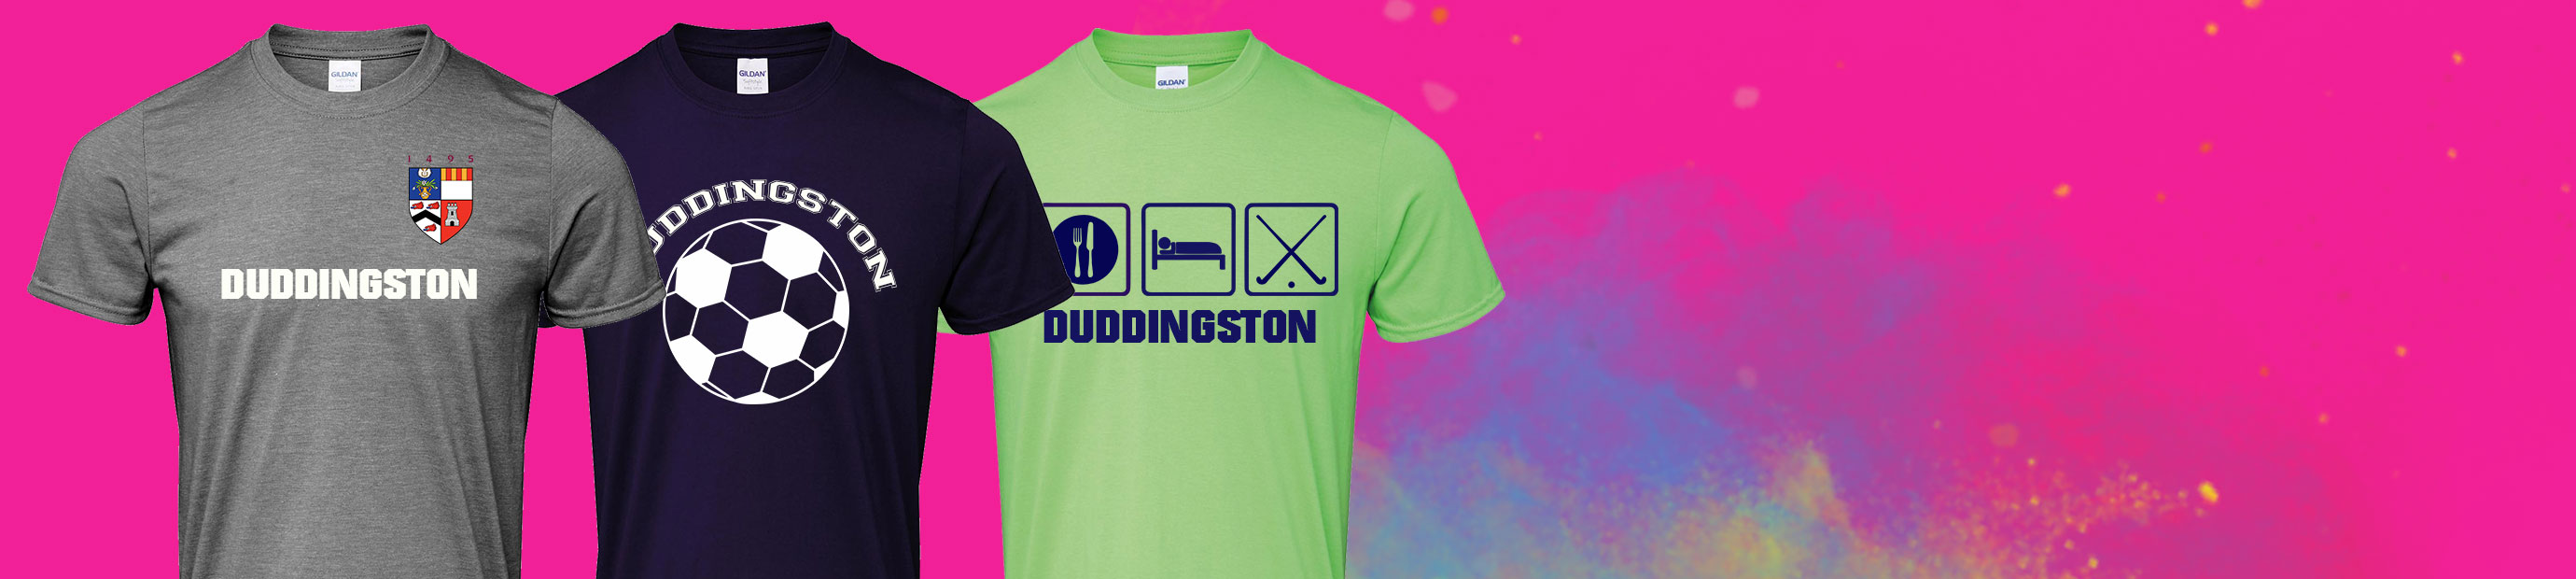 T-Shirt Printing in Duddingston